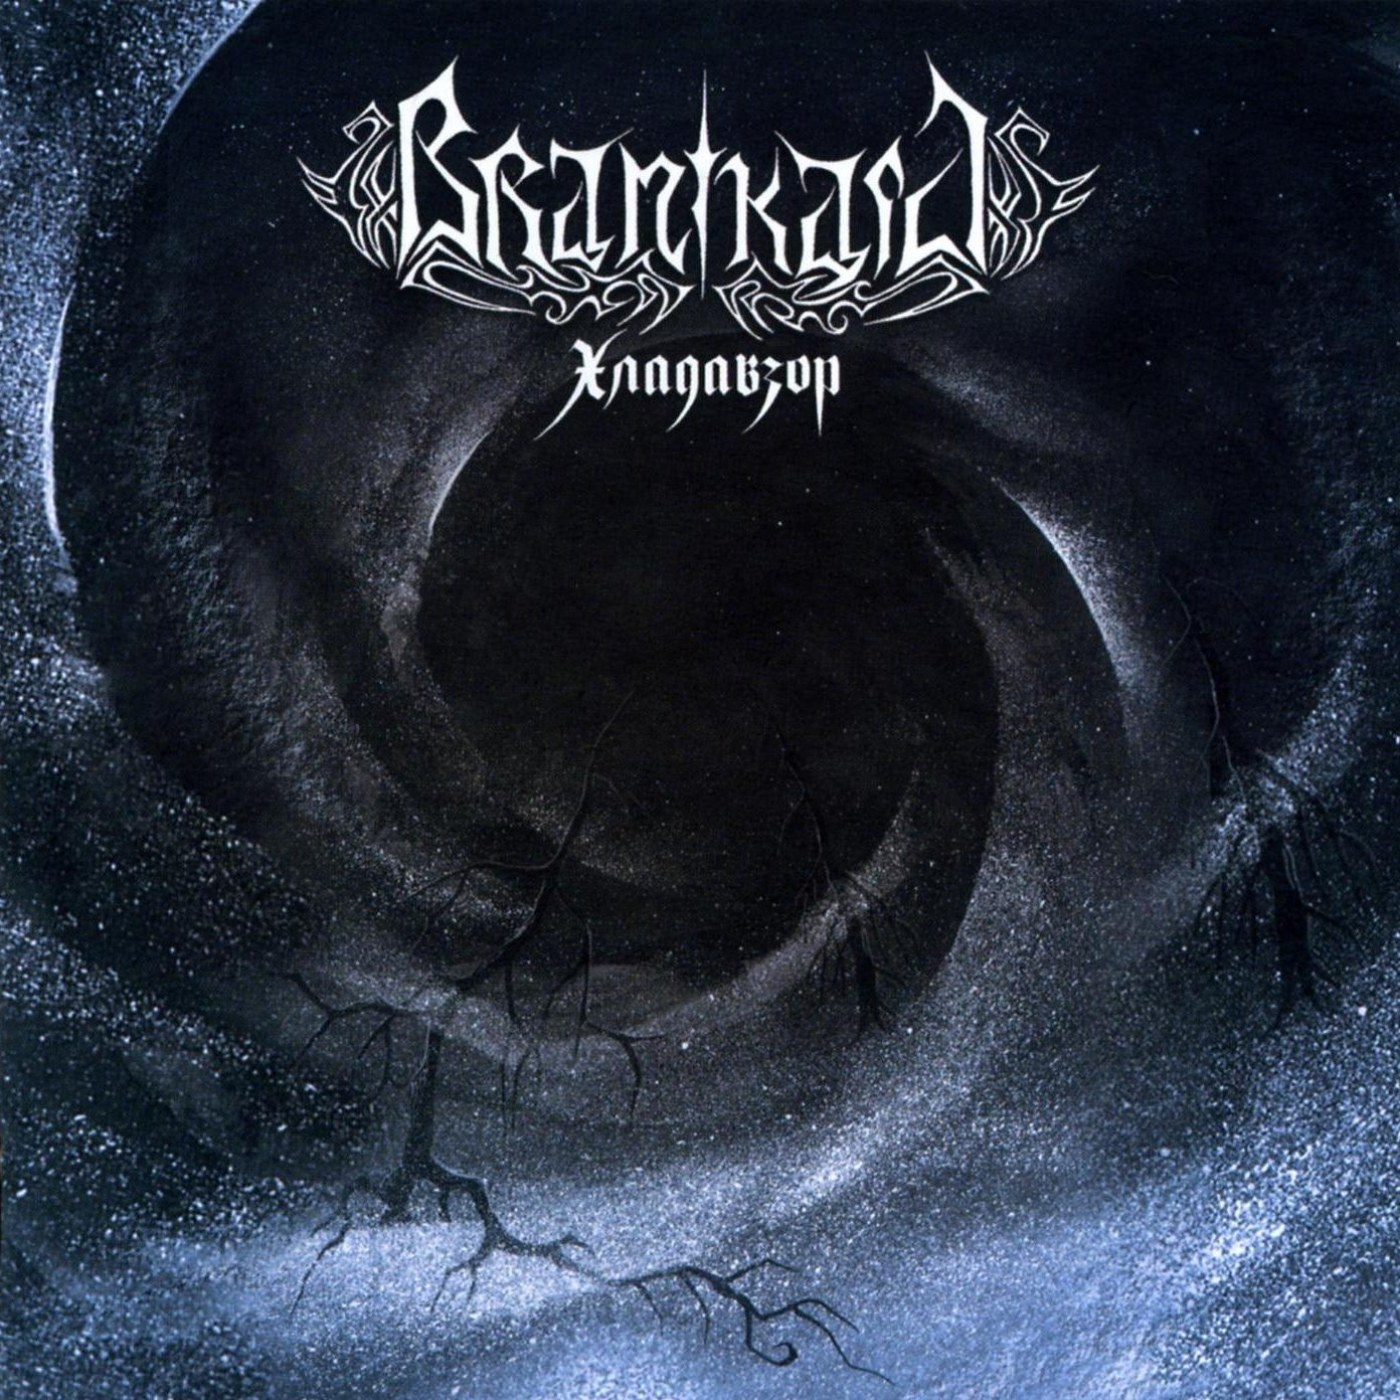 Review for Branikald - Хладавзор